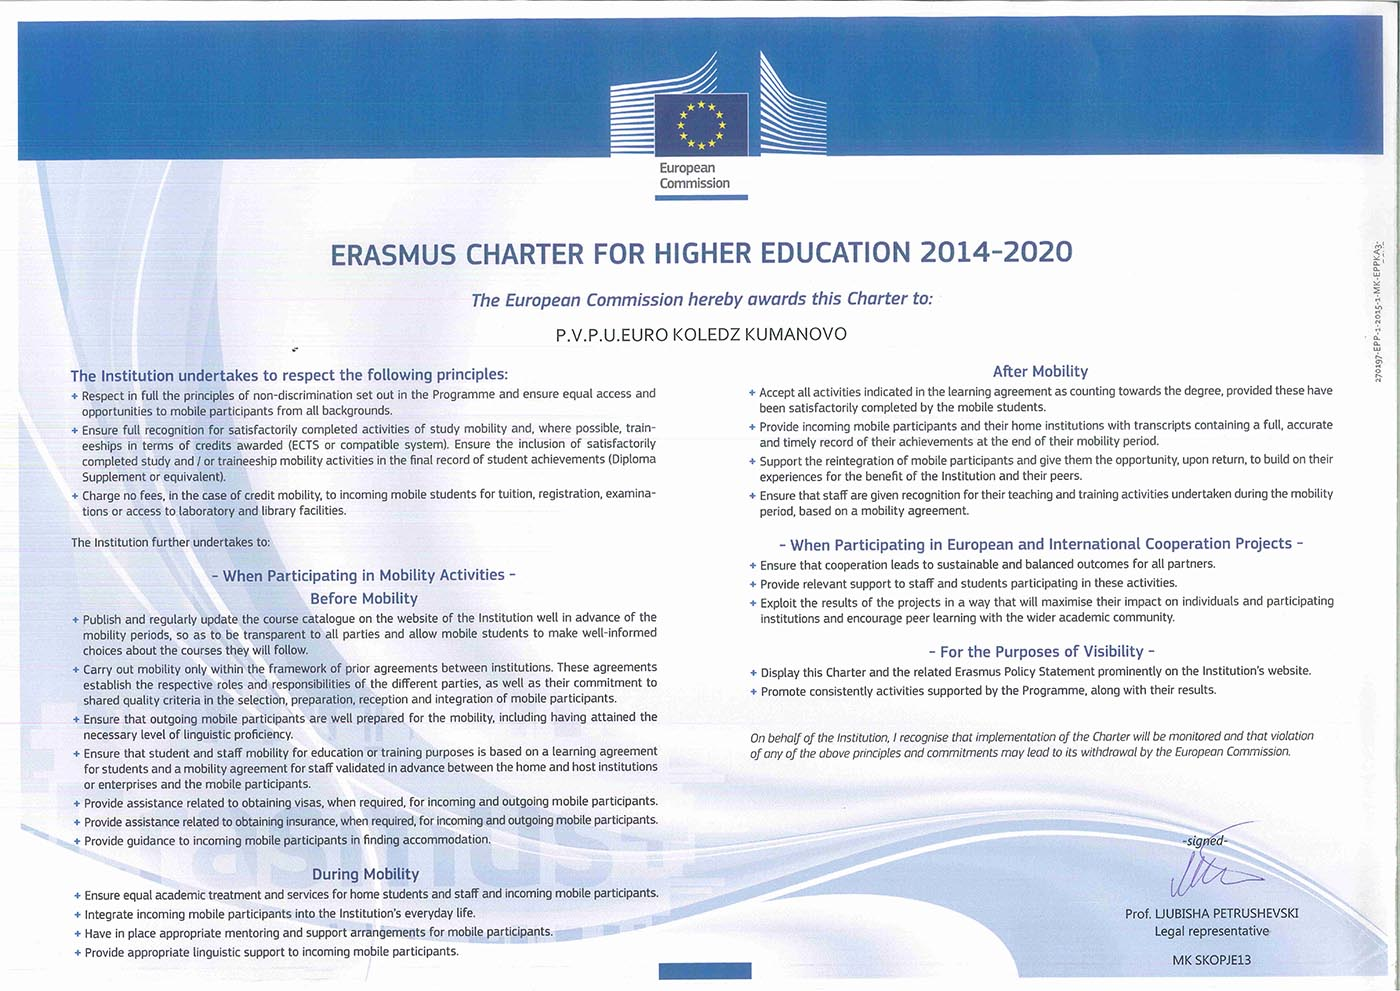 Erasmus Charter for higher education 2014-2020-1